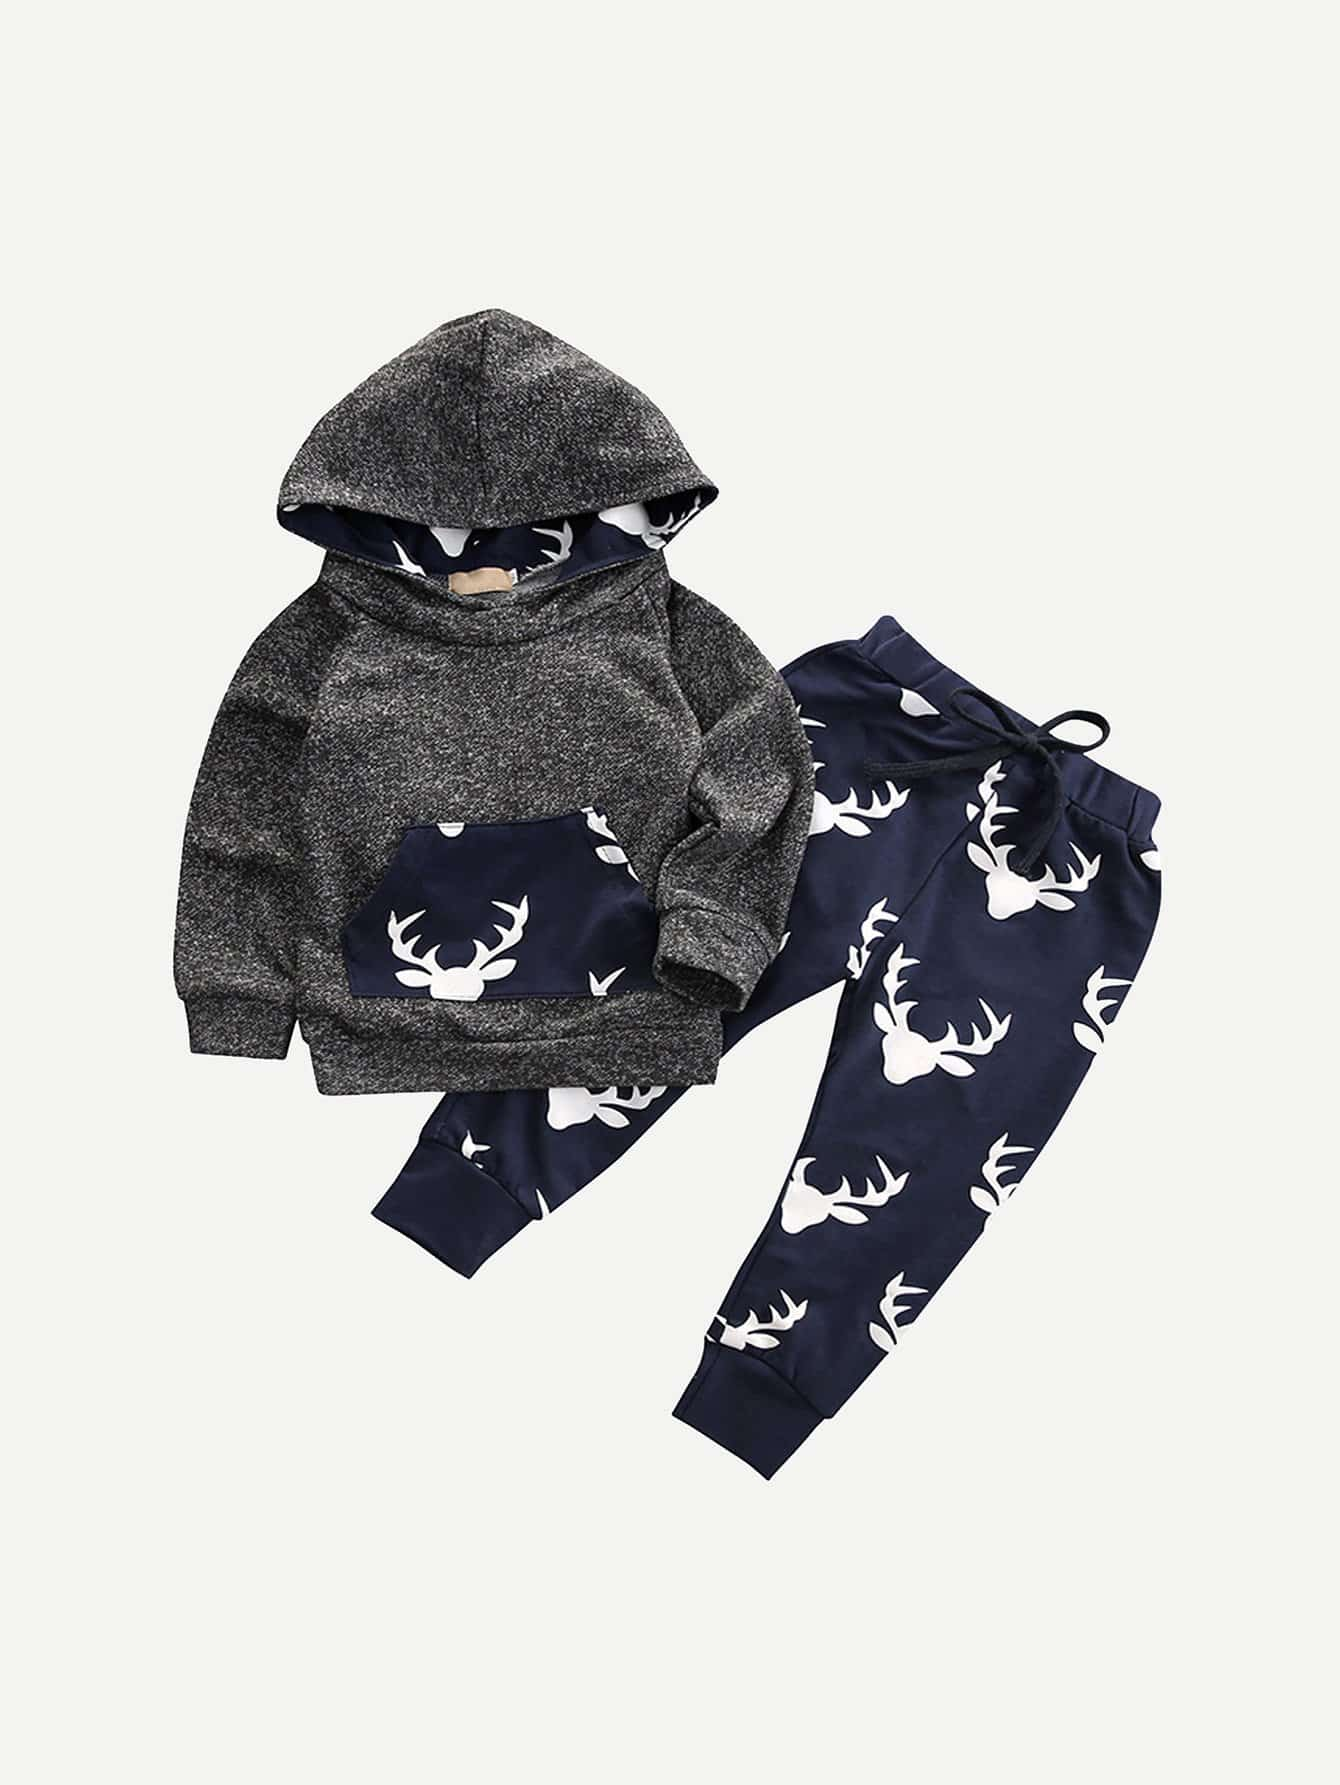 Toddler Boys Hooded Sweatshirt With Deer Print Pants null